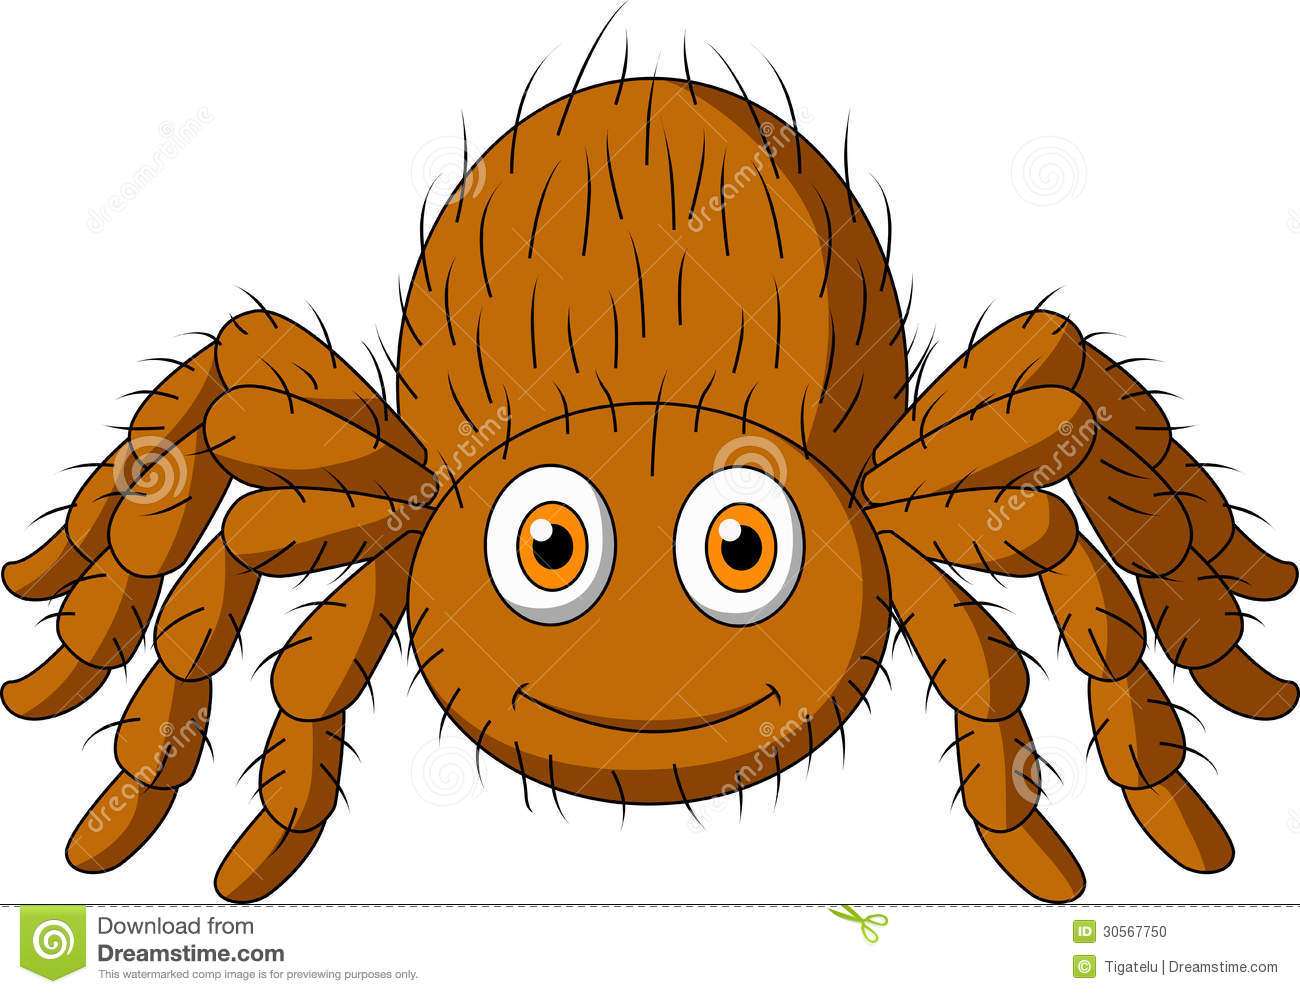 PNG Cartoon Spider by JSSanDA on DeviantArt